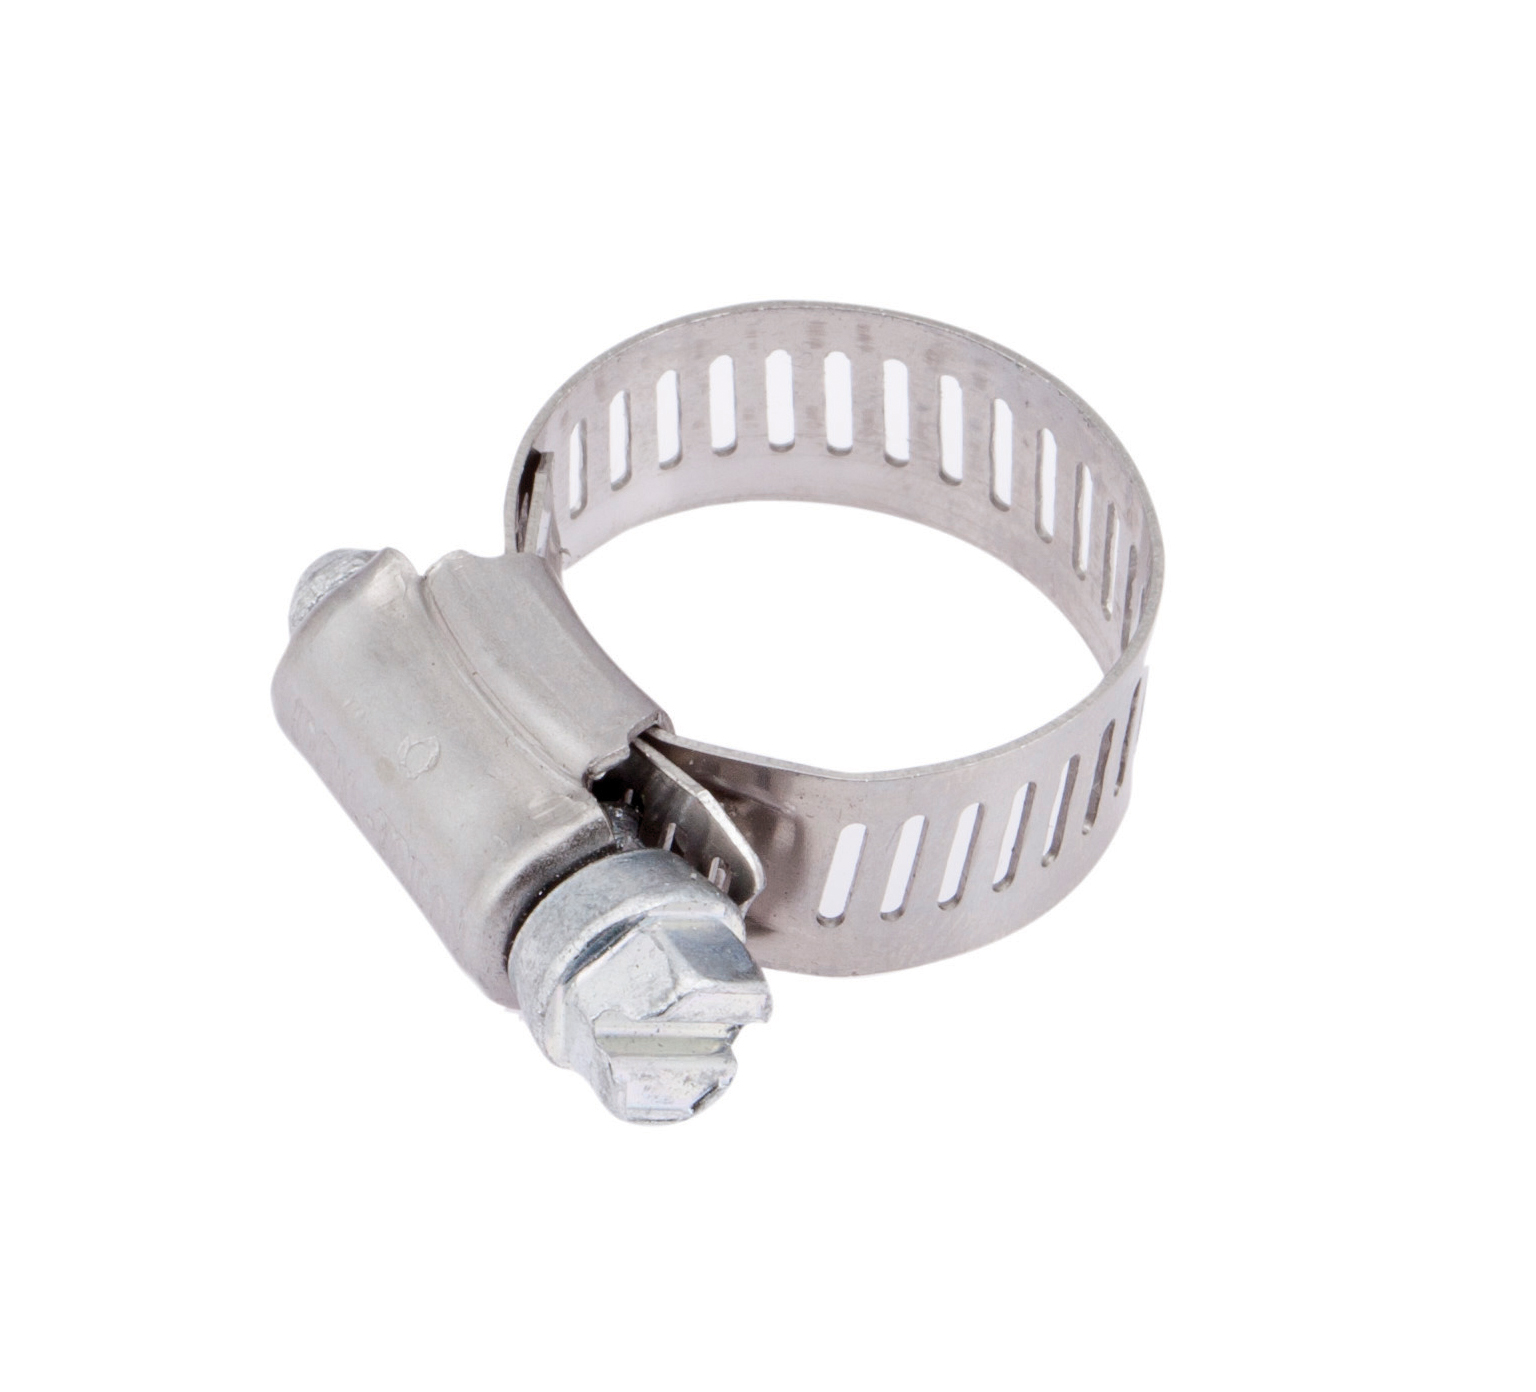 63810 Stainless Steel Hose Clamp - 0.5 - 1.12 in x 0.5 in alt 1